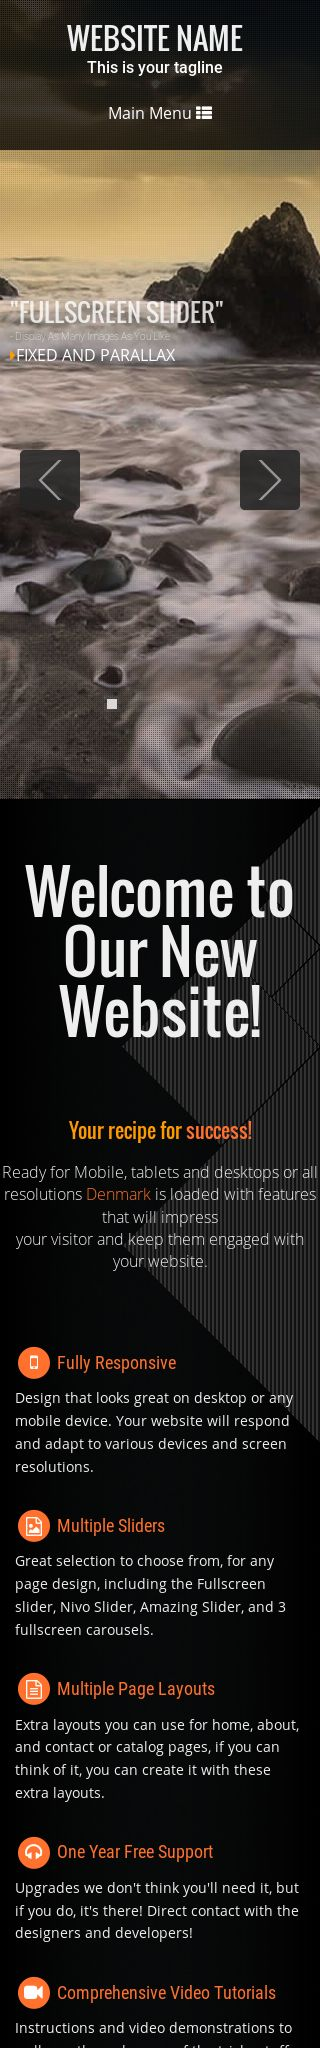 Mobile: Multi-purpose Web Template